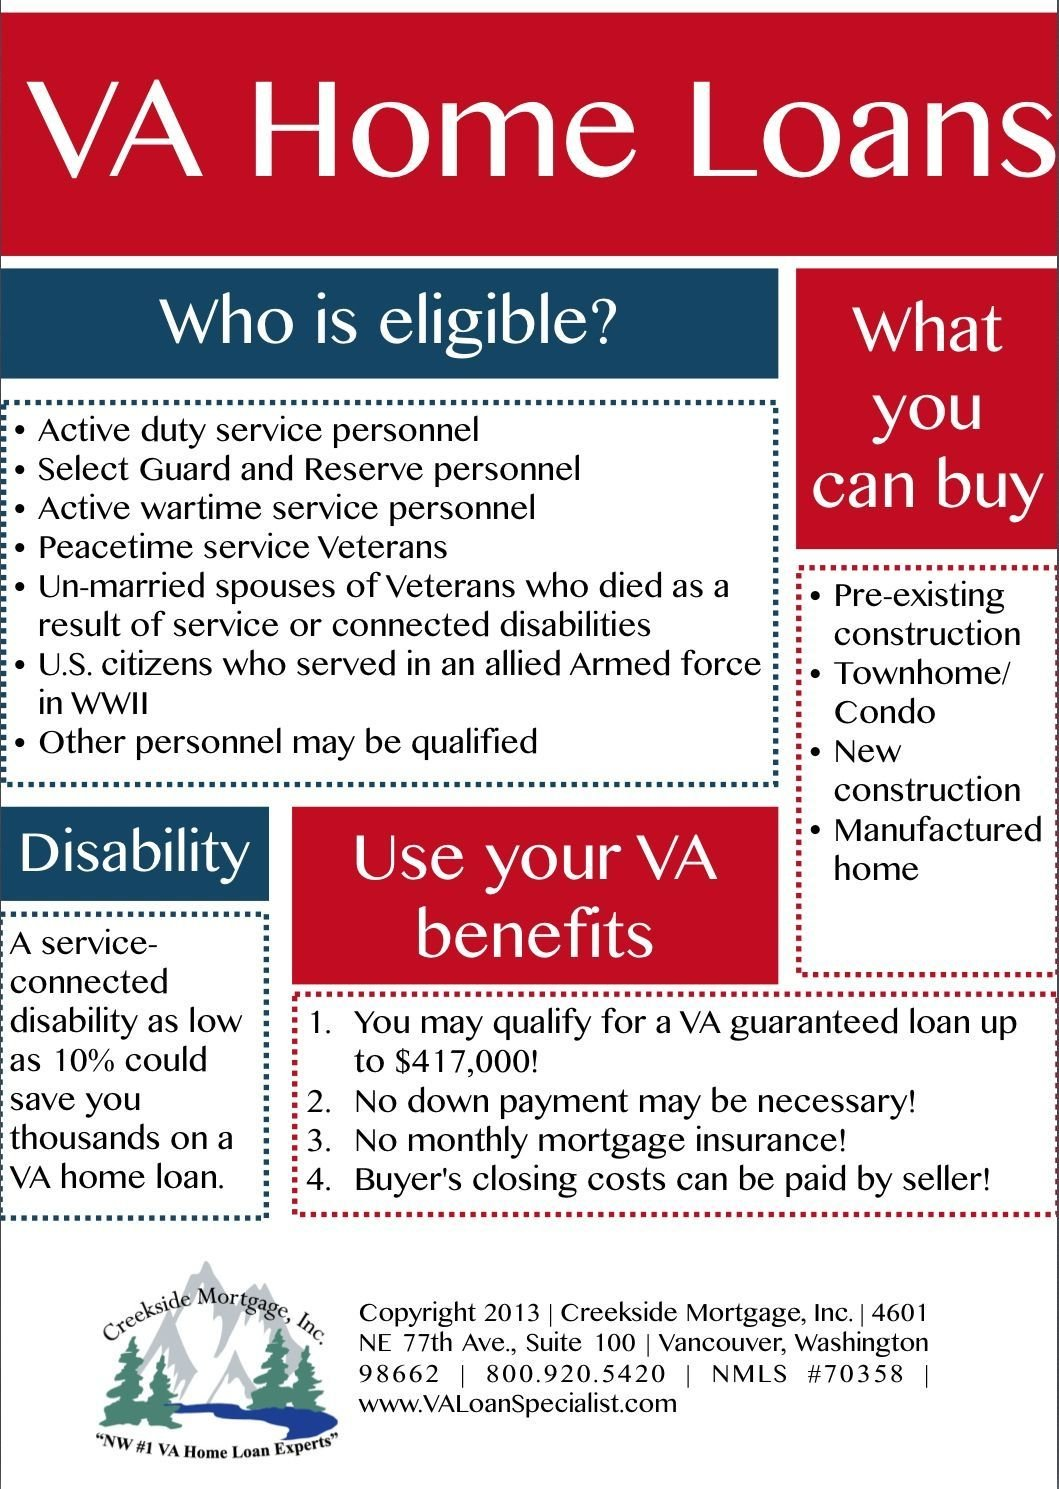 Best Va Home Loans Are The Specialty At Creekside Mortgage With Pictures